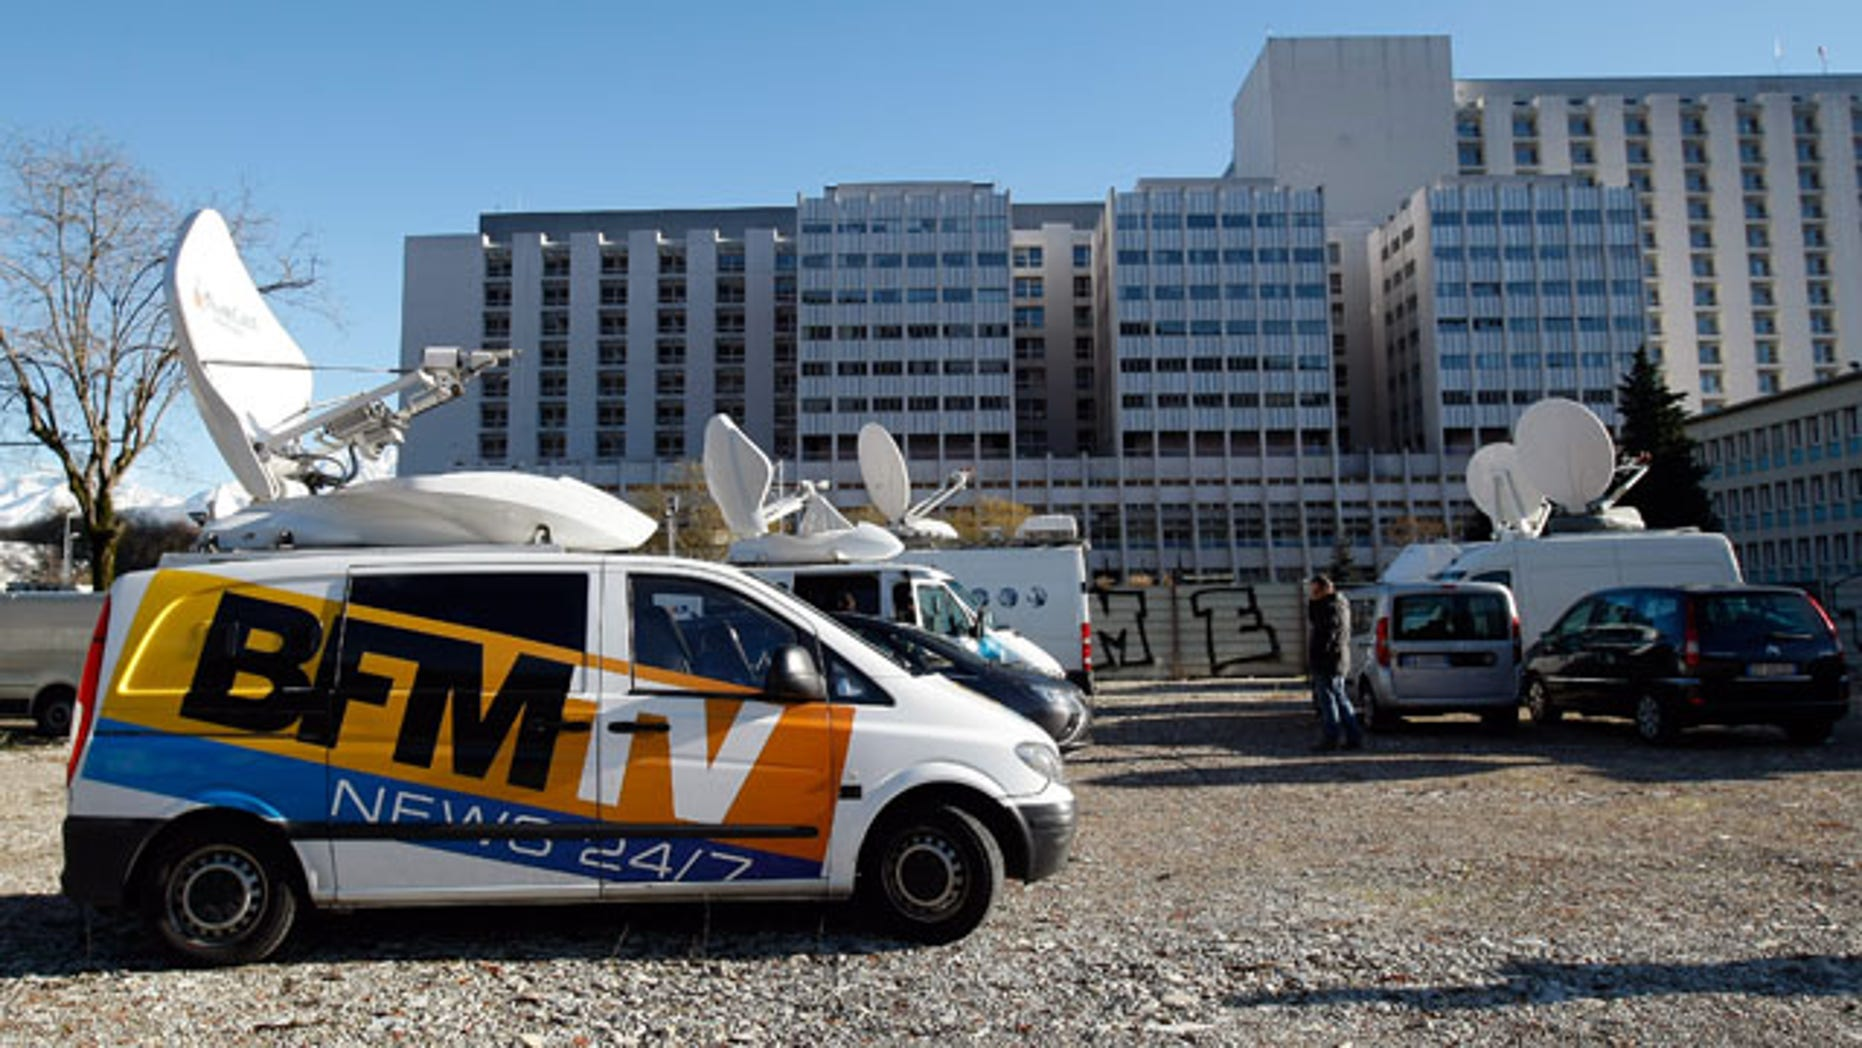 January 5, 2014: A TV van is parked in front of the Grenoble hospital where former seven-time Formula One champion Michael Schumacher is being treated after sustaining a head injury during a ski accident. (AP Photo/Claude Paris)